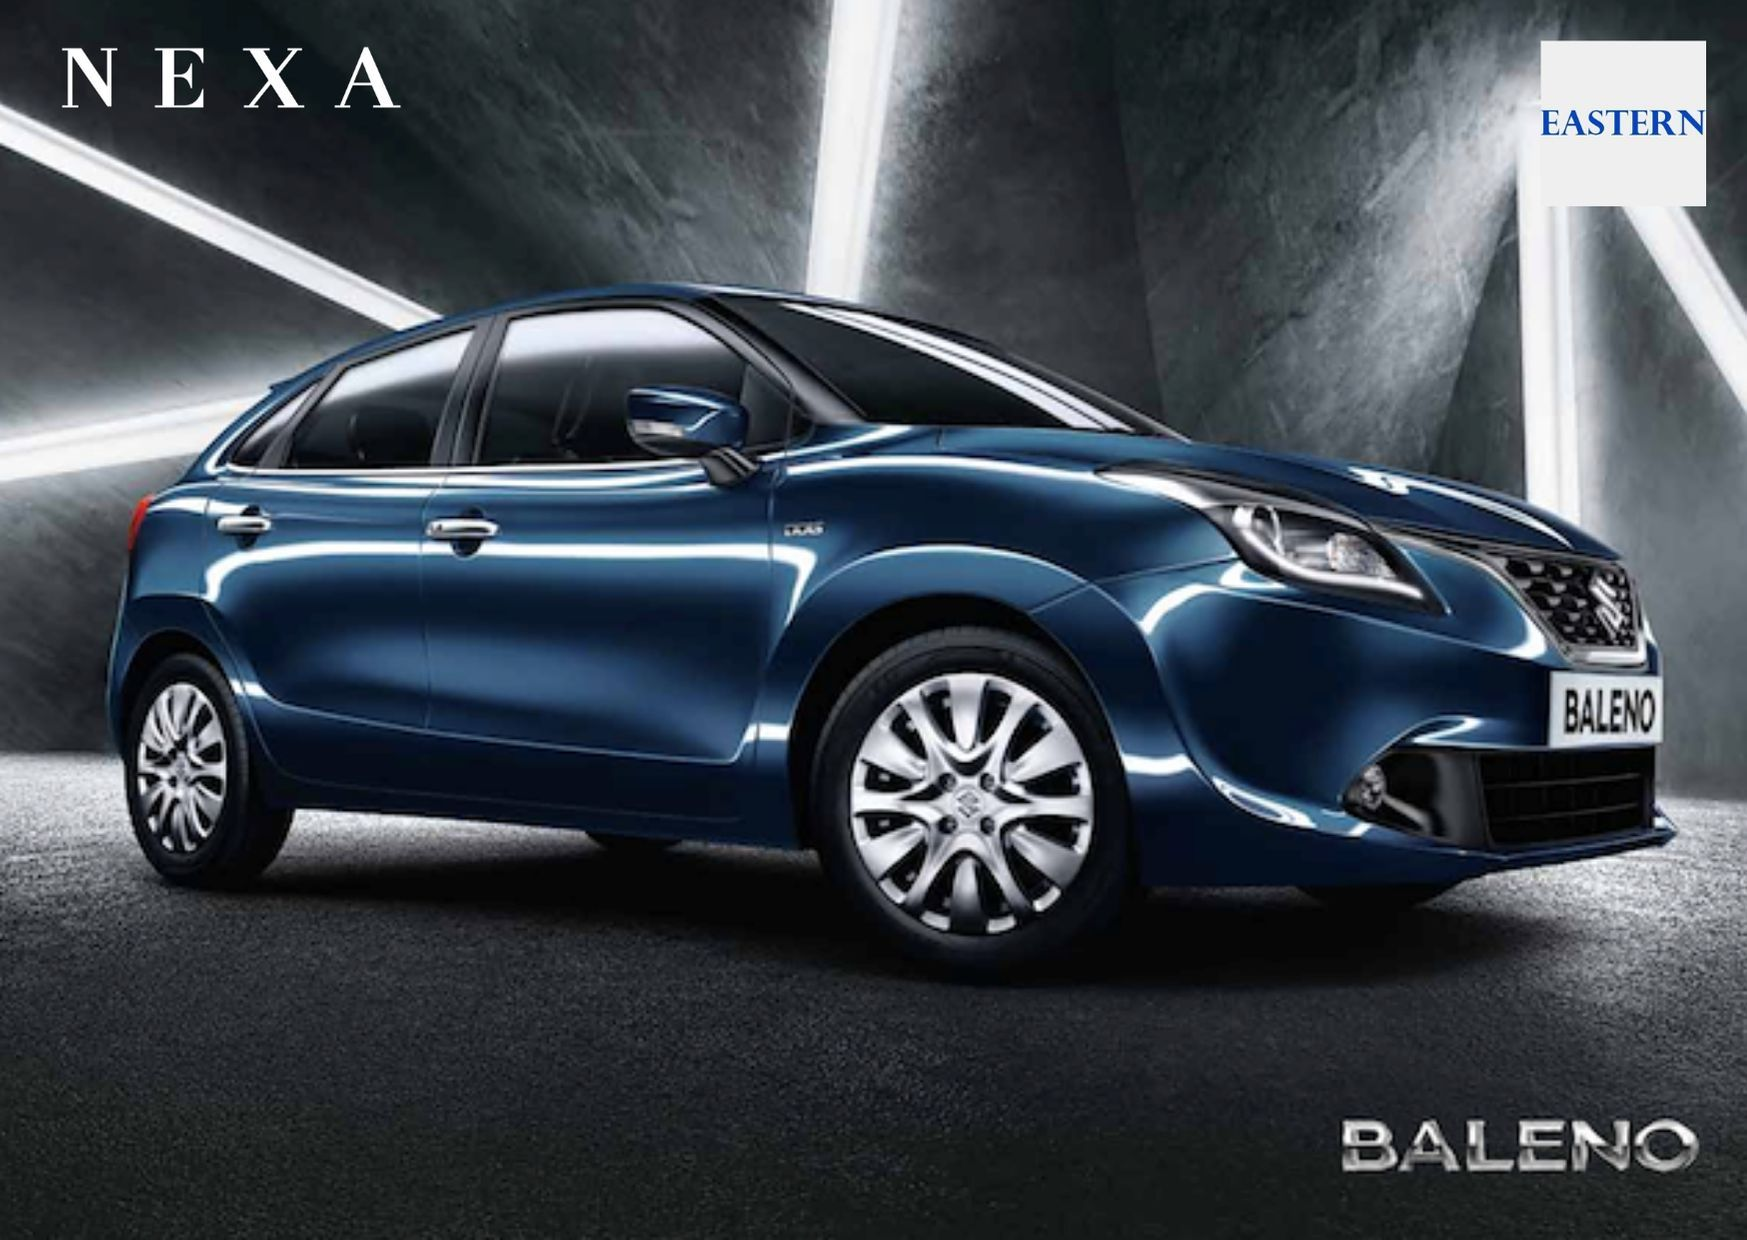 Get Baleno Car Test Drive in Imphal for free at Eastern